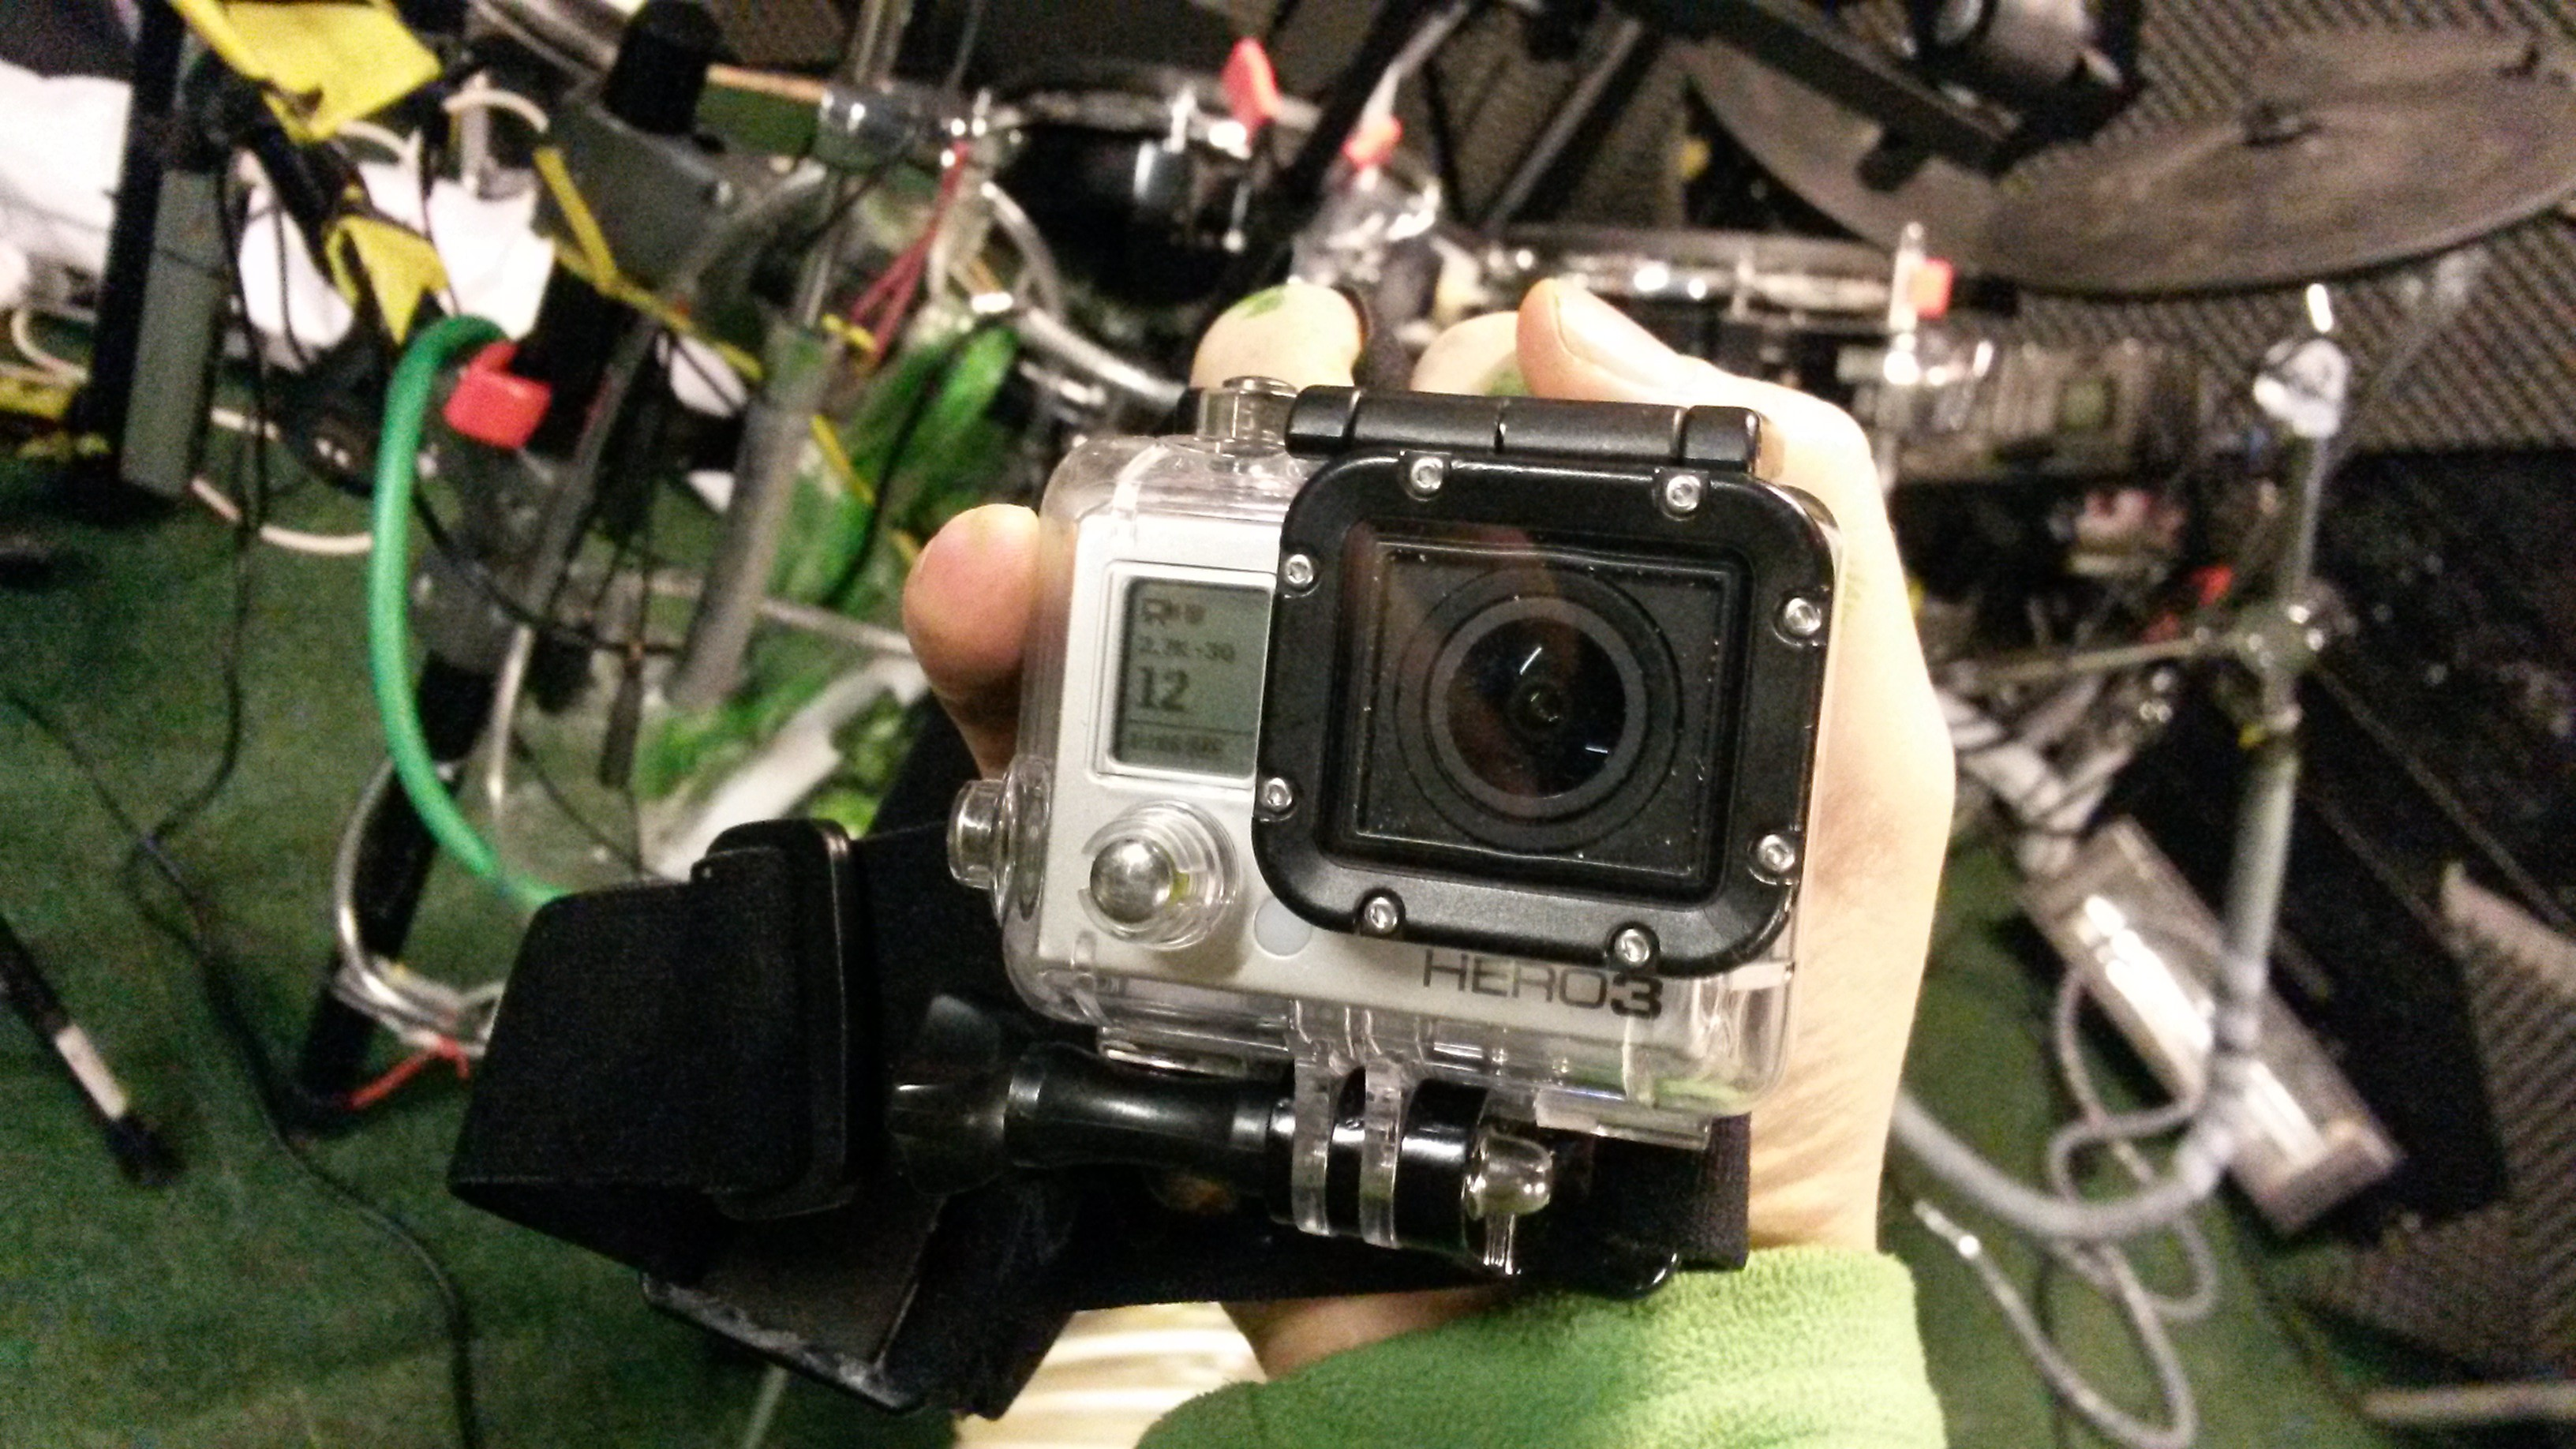 Live video recording on GoPro Hero cameras